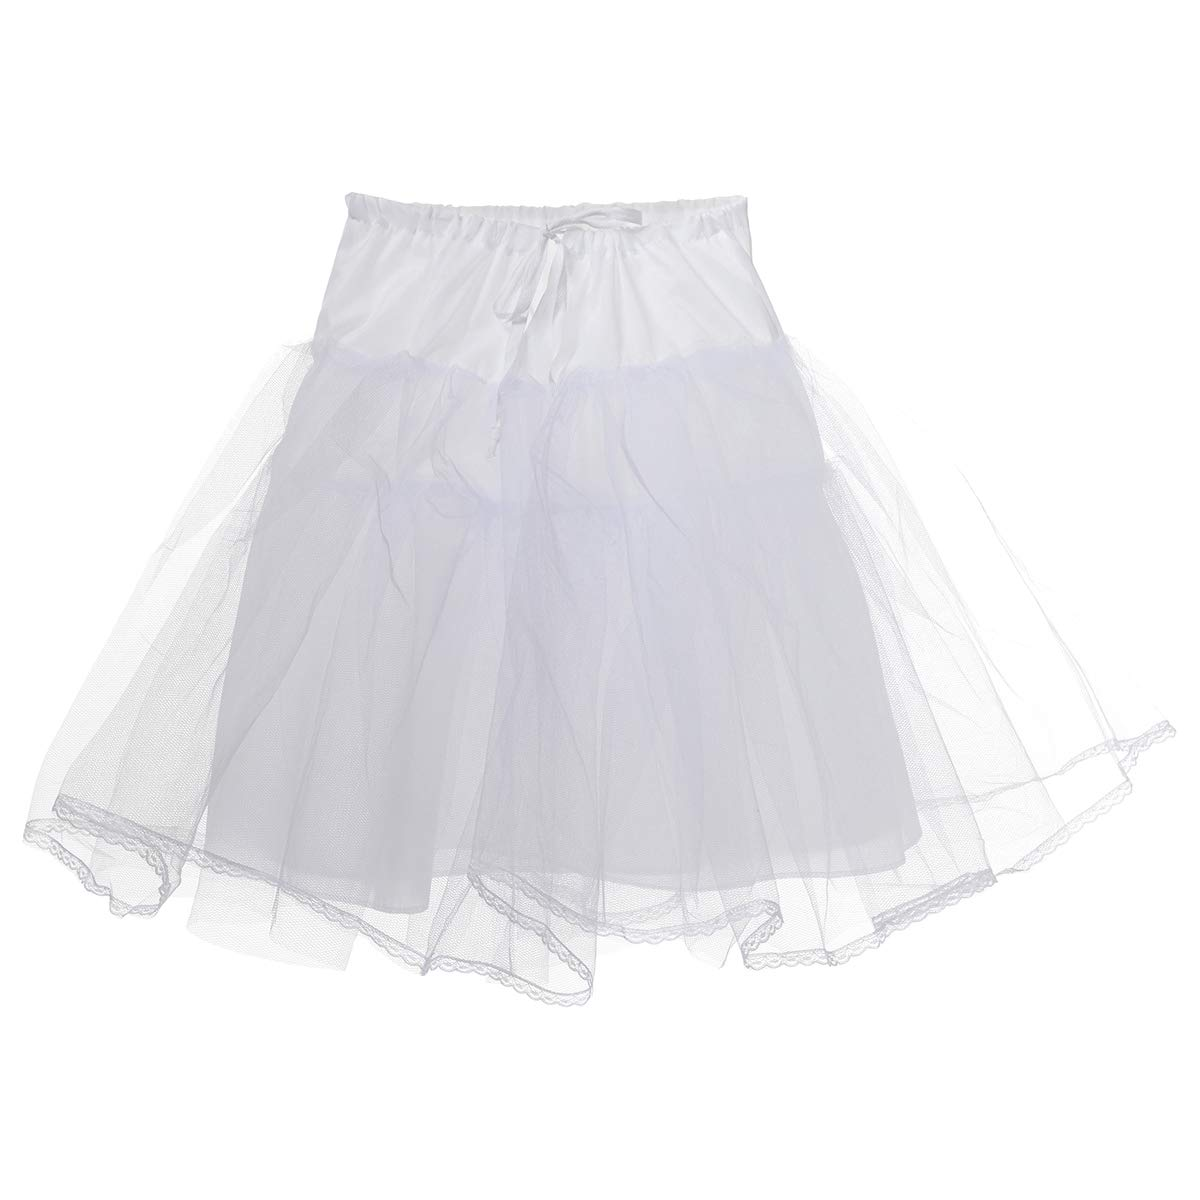 Topwedding Flower Girls Bridal Petticoat Crinoline Underskirt Slip for Children Kids LWQC130061